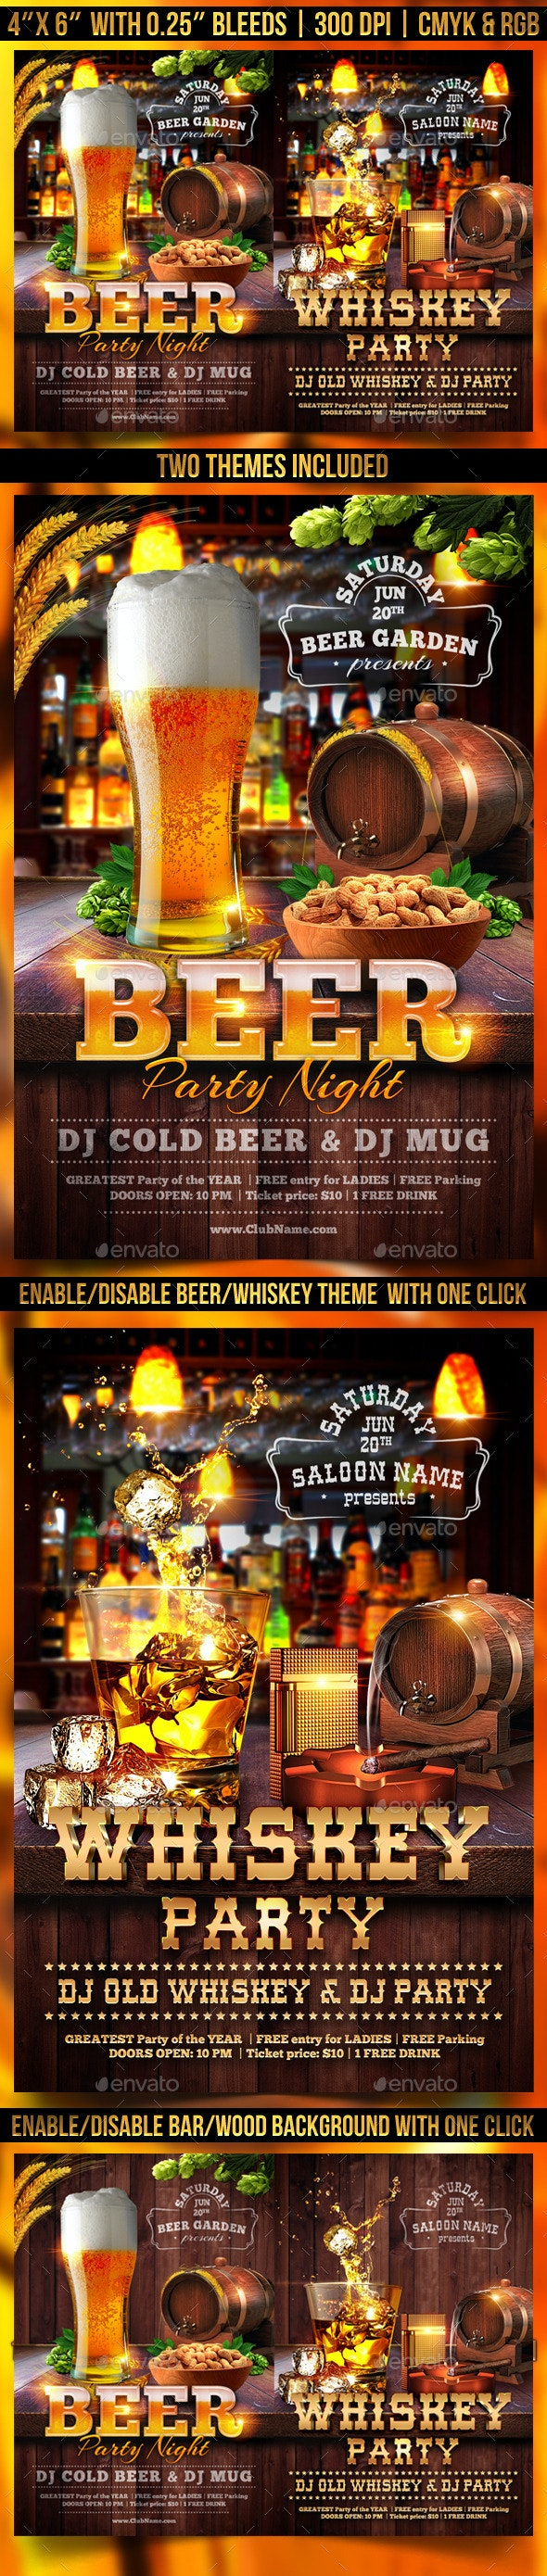 Beer and Whiskey Flyer Template - Clubs & Parties Events